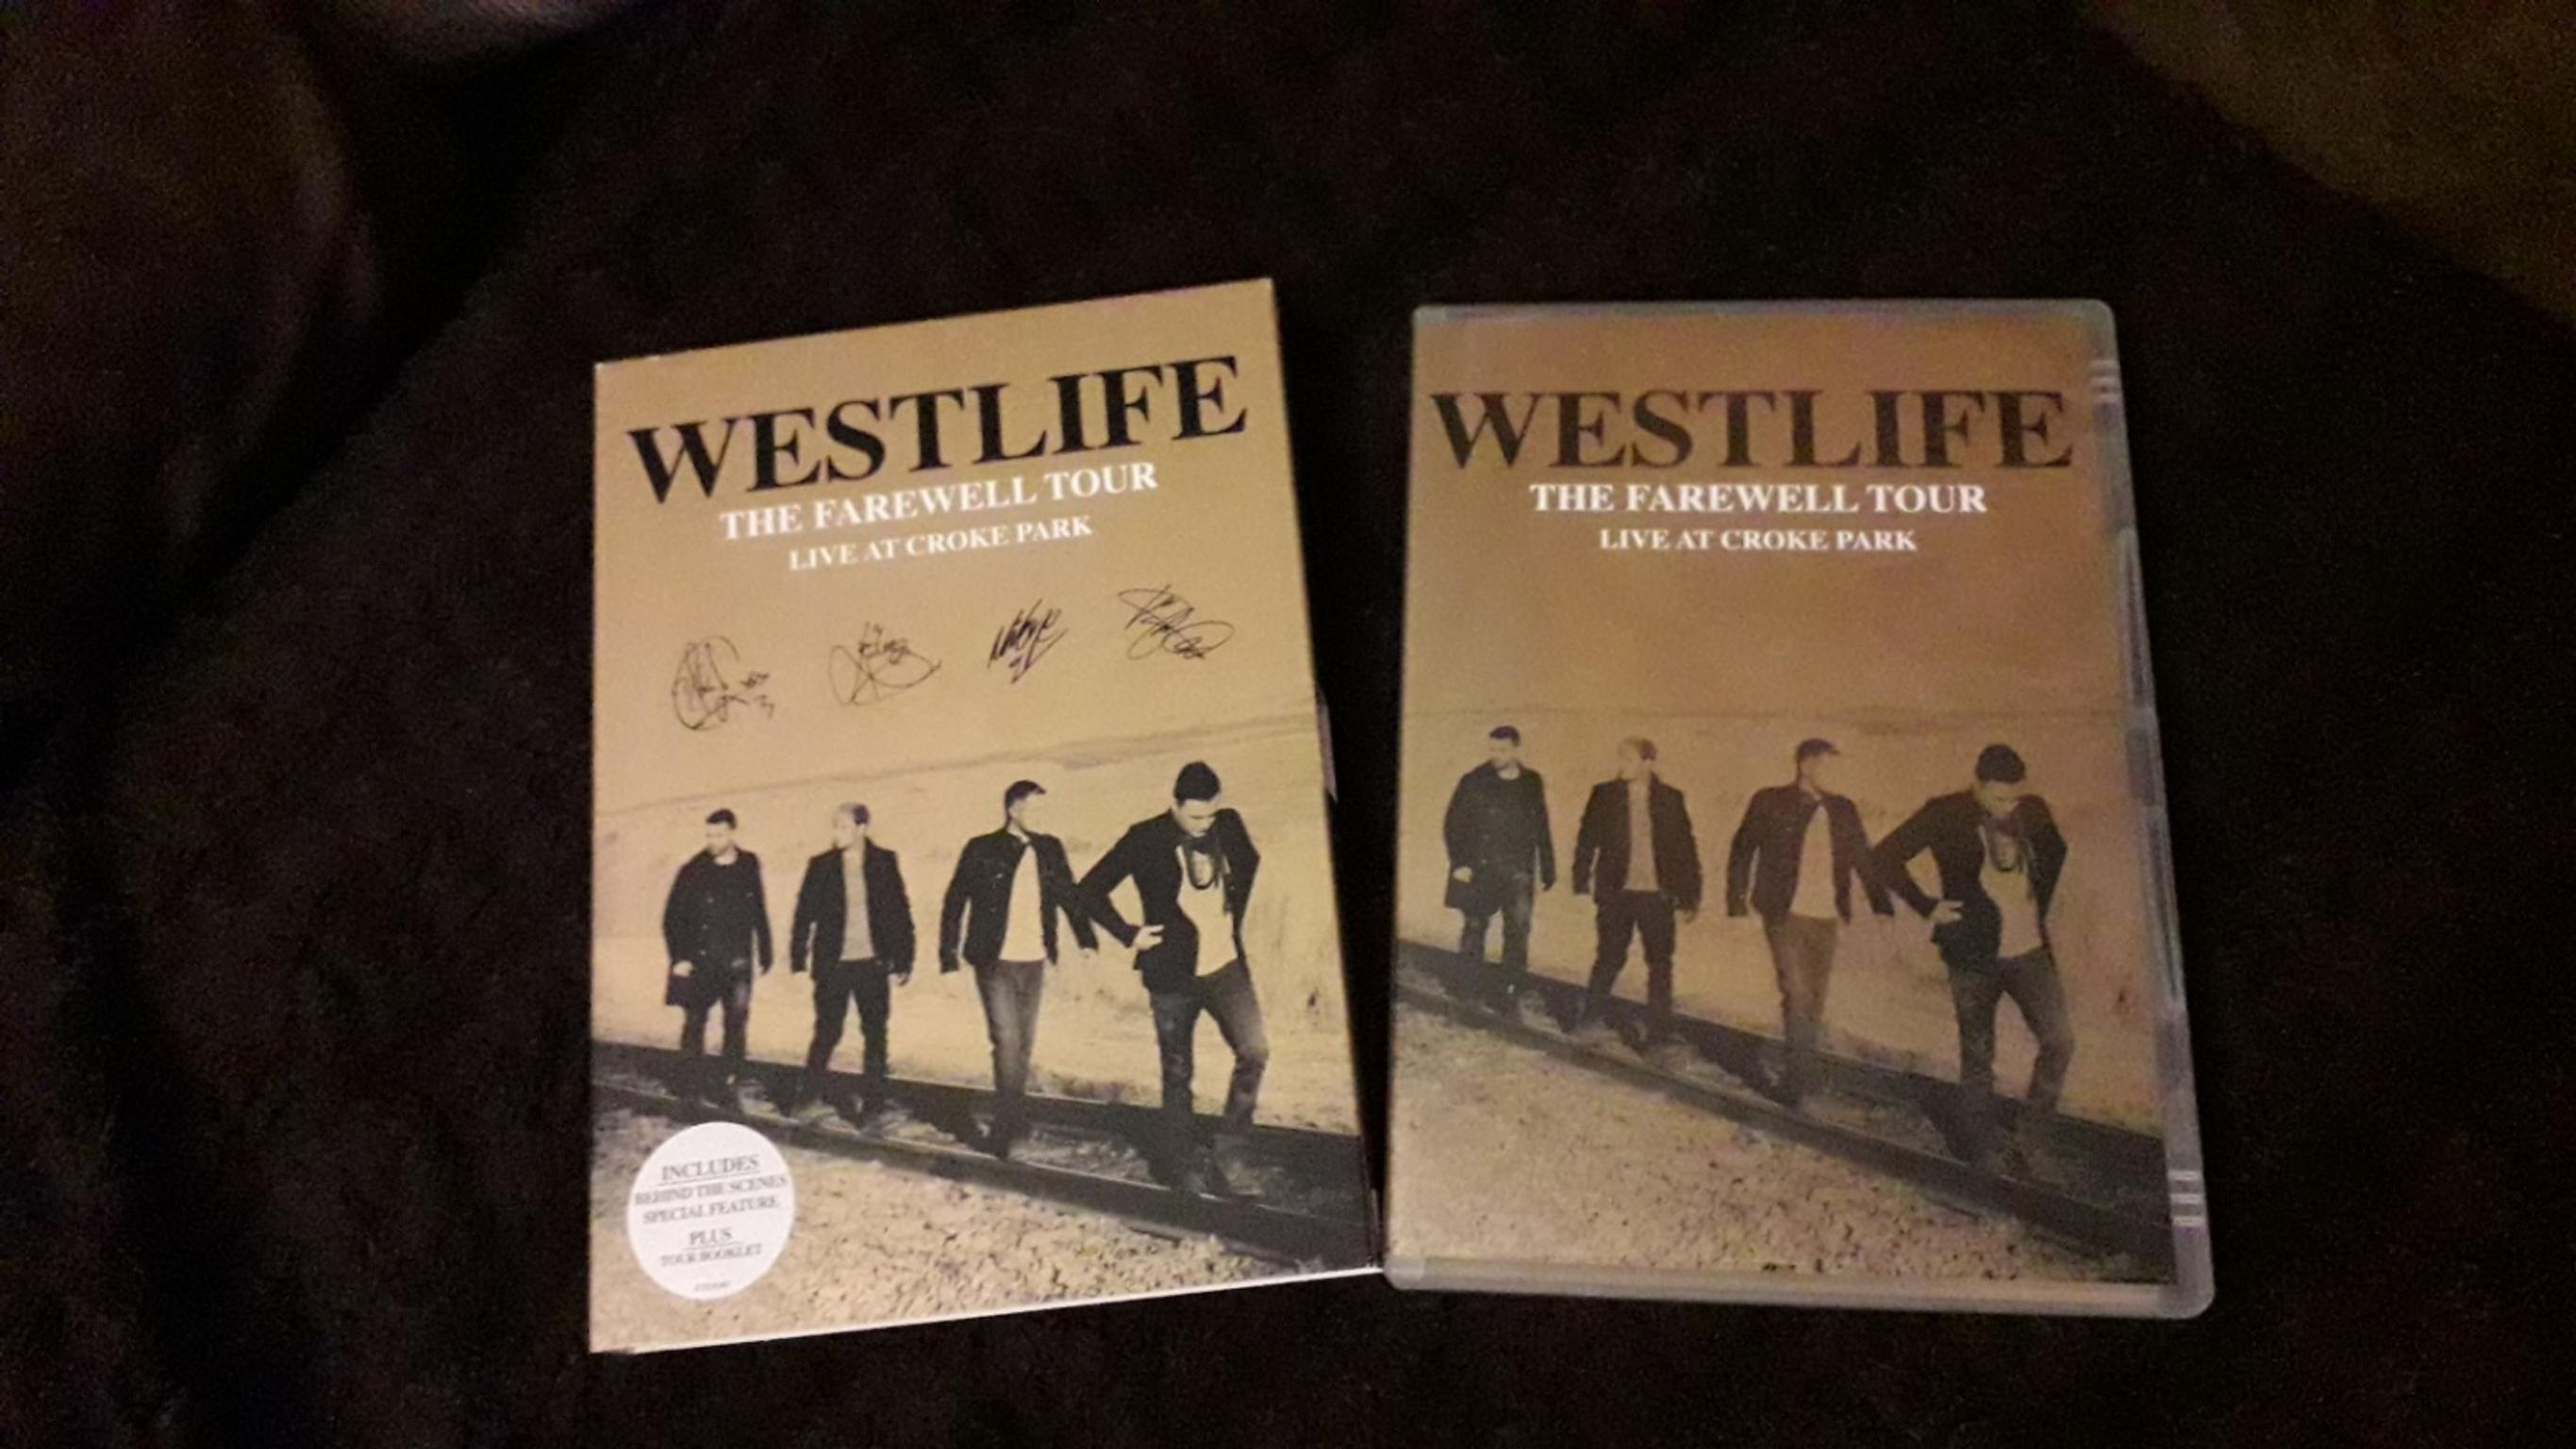 Westlife farewell tour DVD